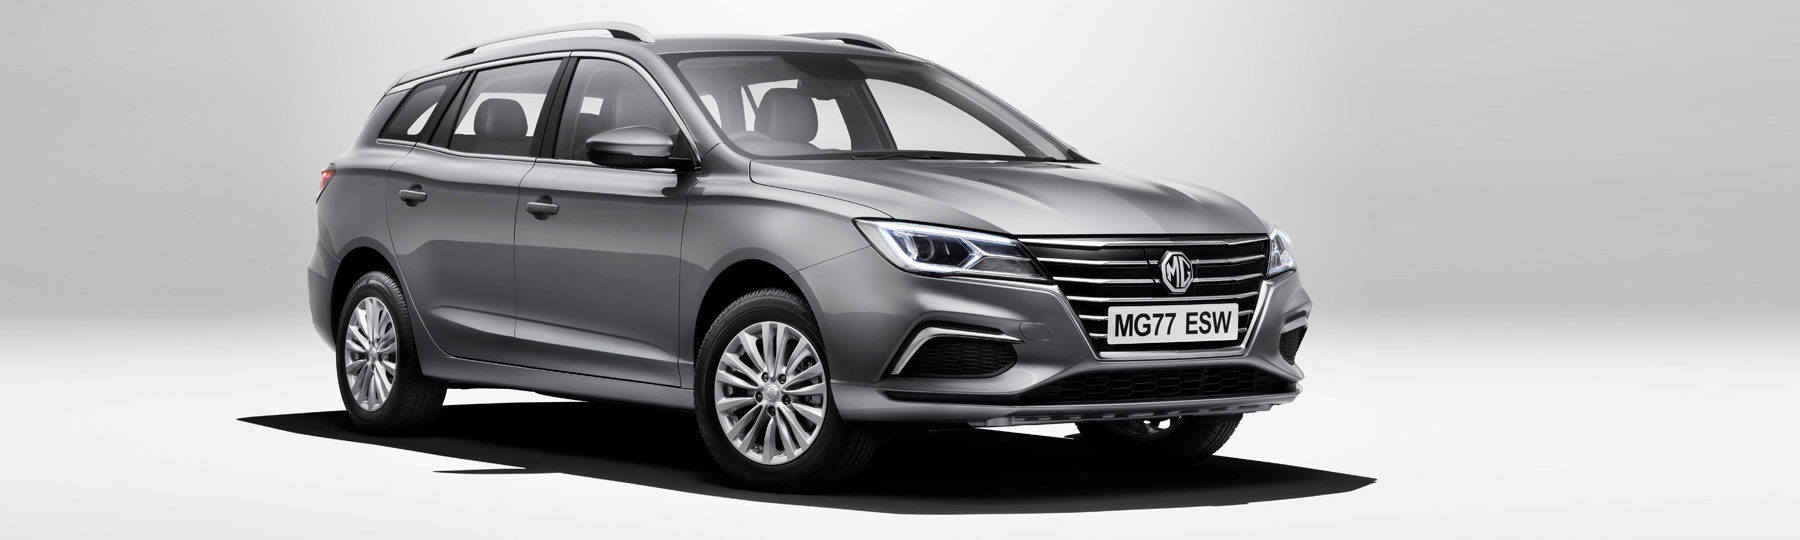 All New MG5 EV Business Offer